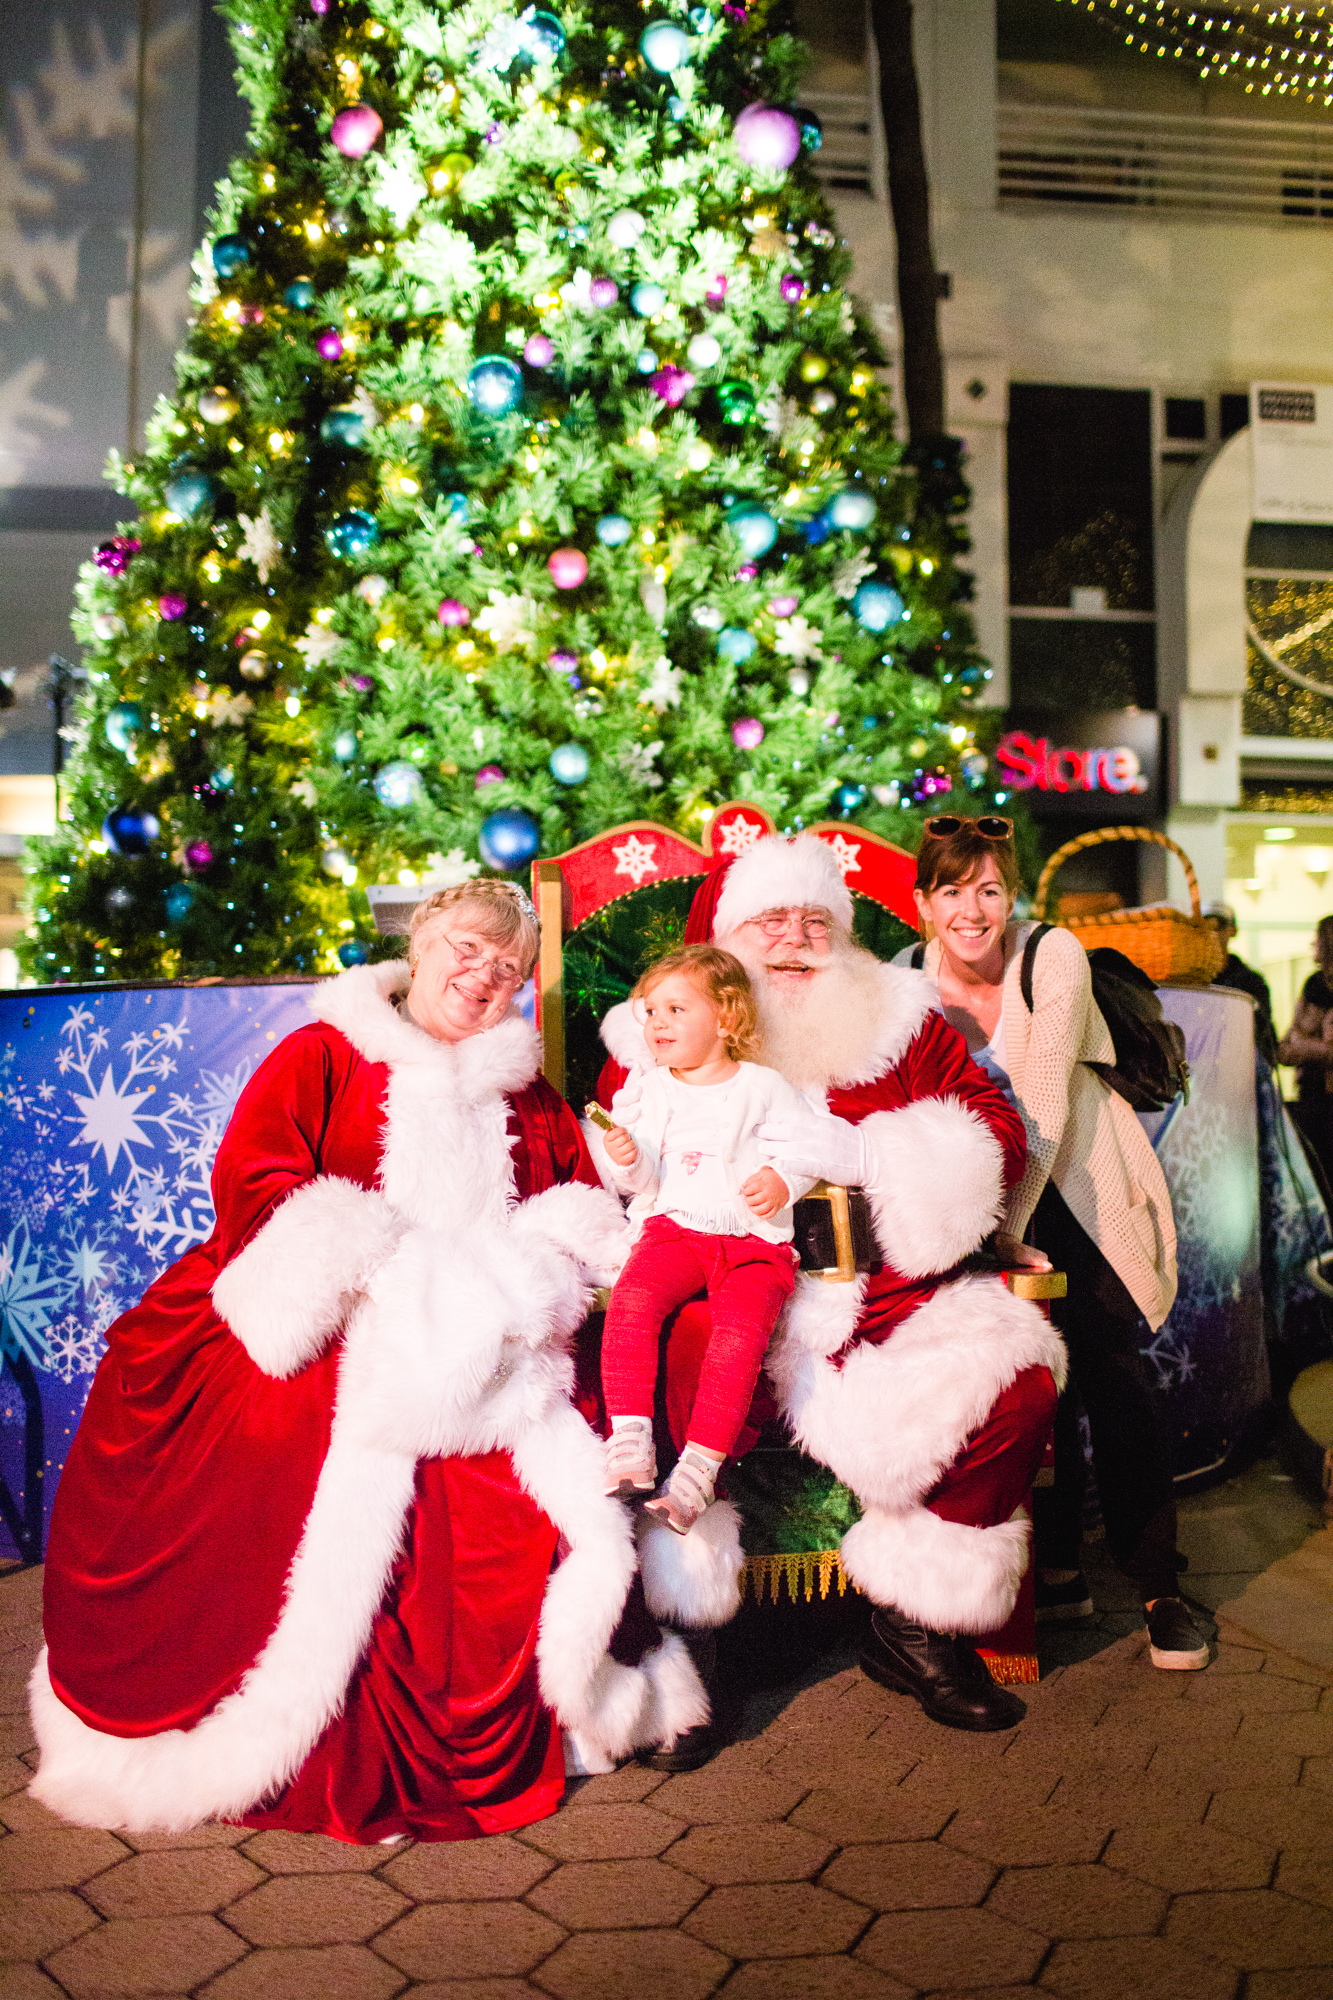 downtown santa monica is your home for the holidays with a full slate of winter festivities including the return of everyones favorite outdoor ice skating - Santa Tree